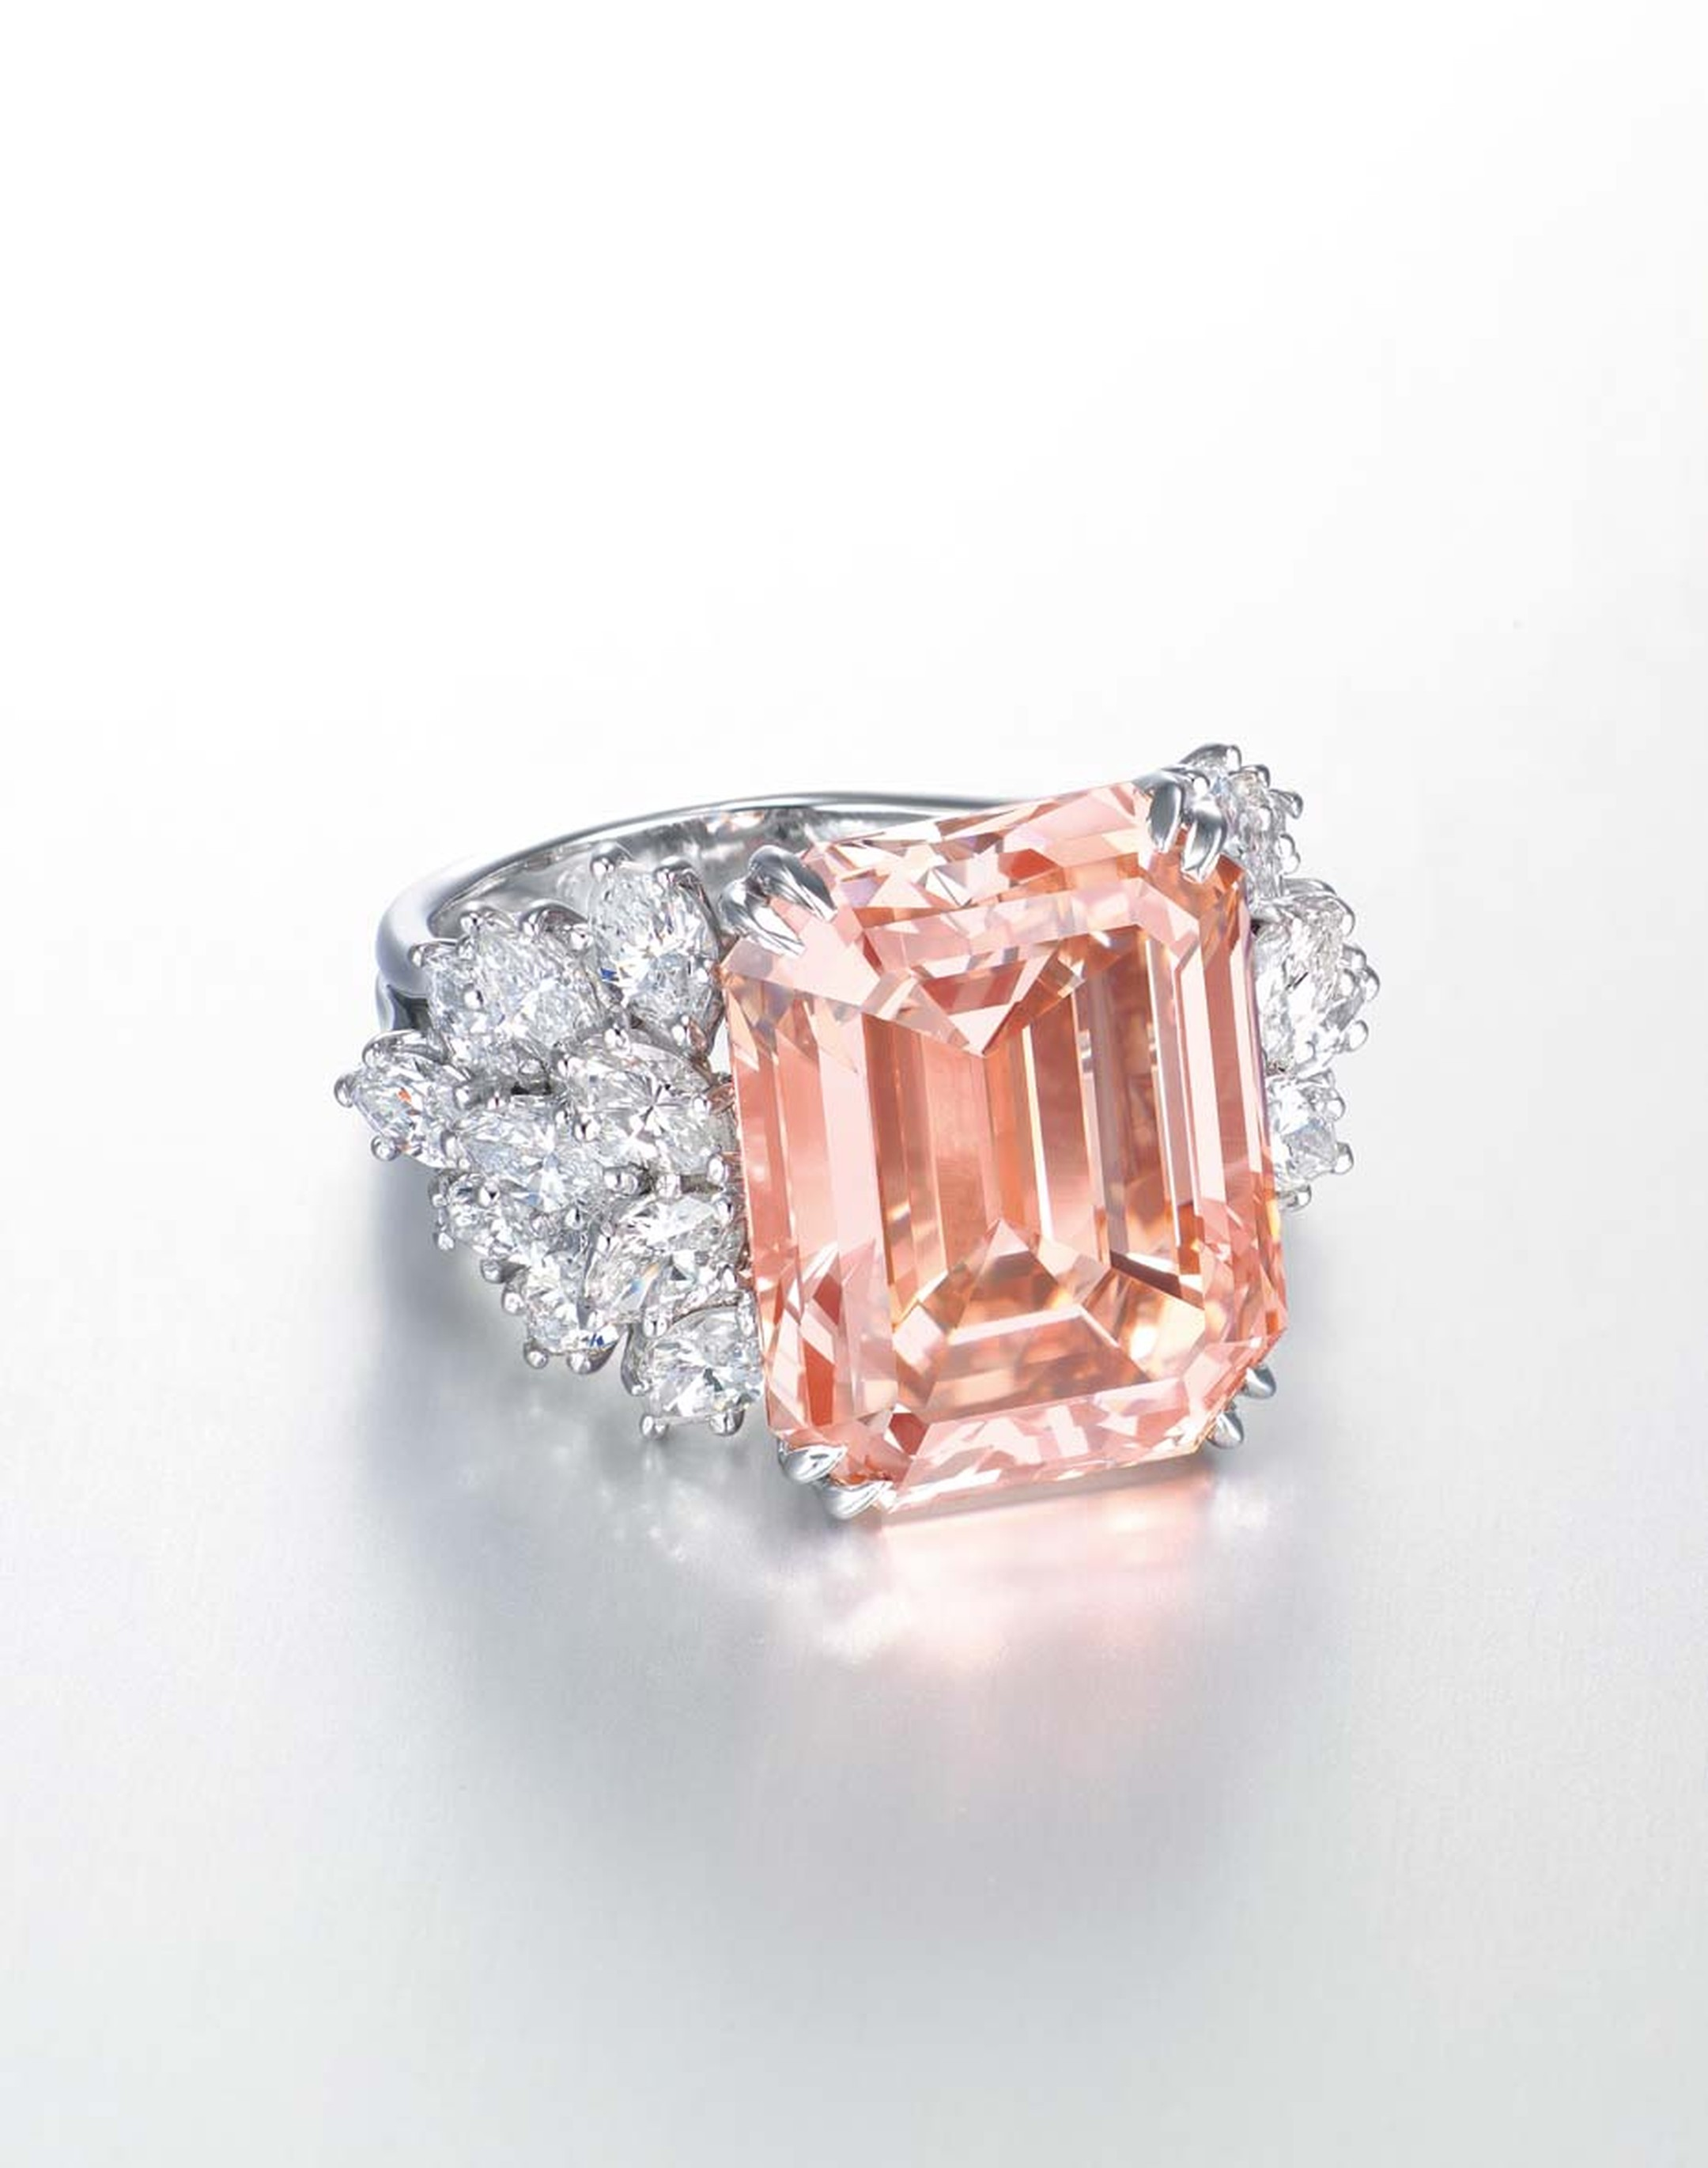 Harry Winston 12.93ct orangey-pink diamond ring (estimate: US$1.6-2.5 million)